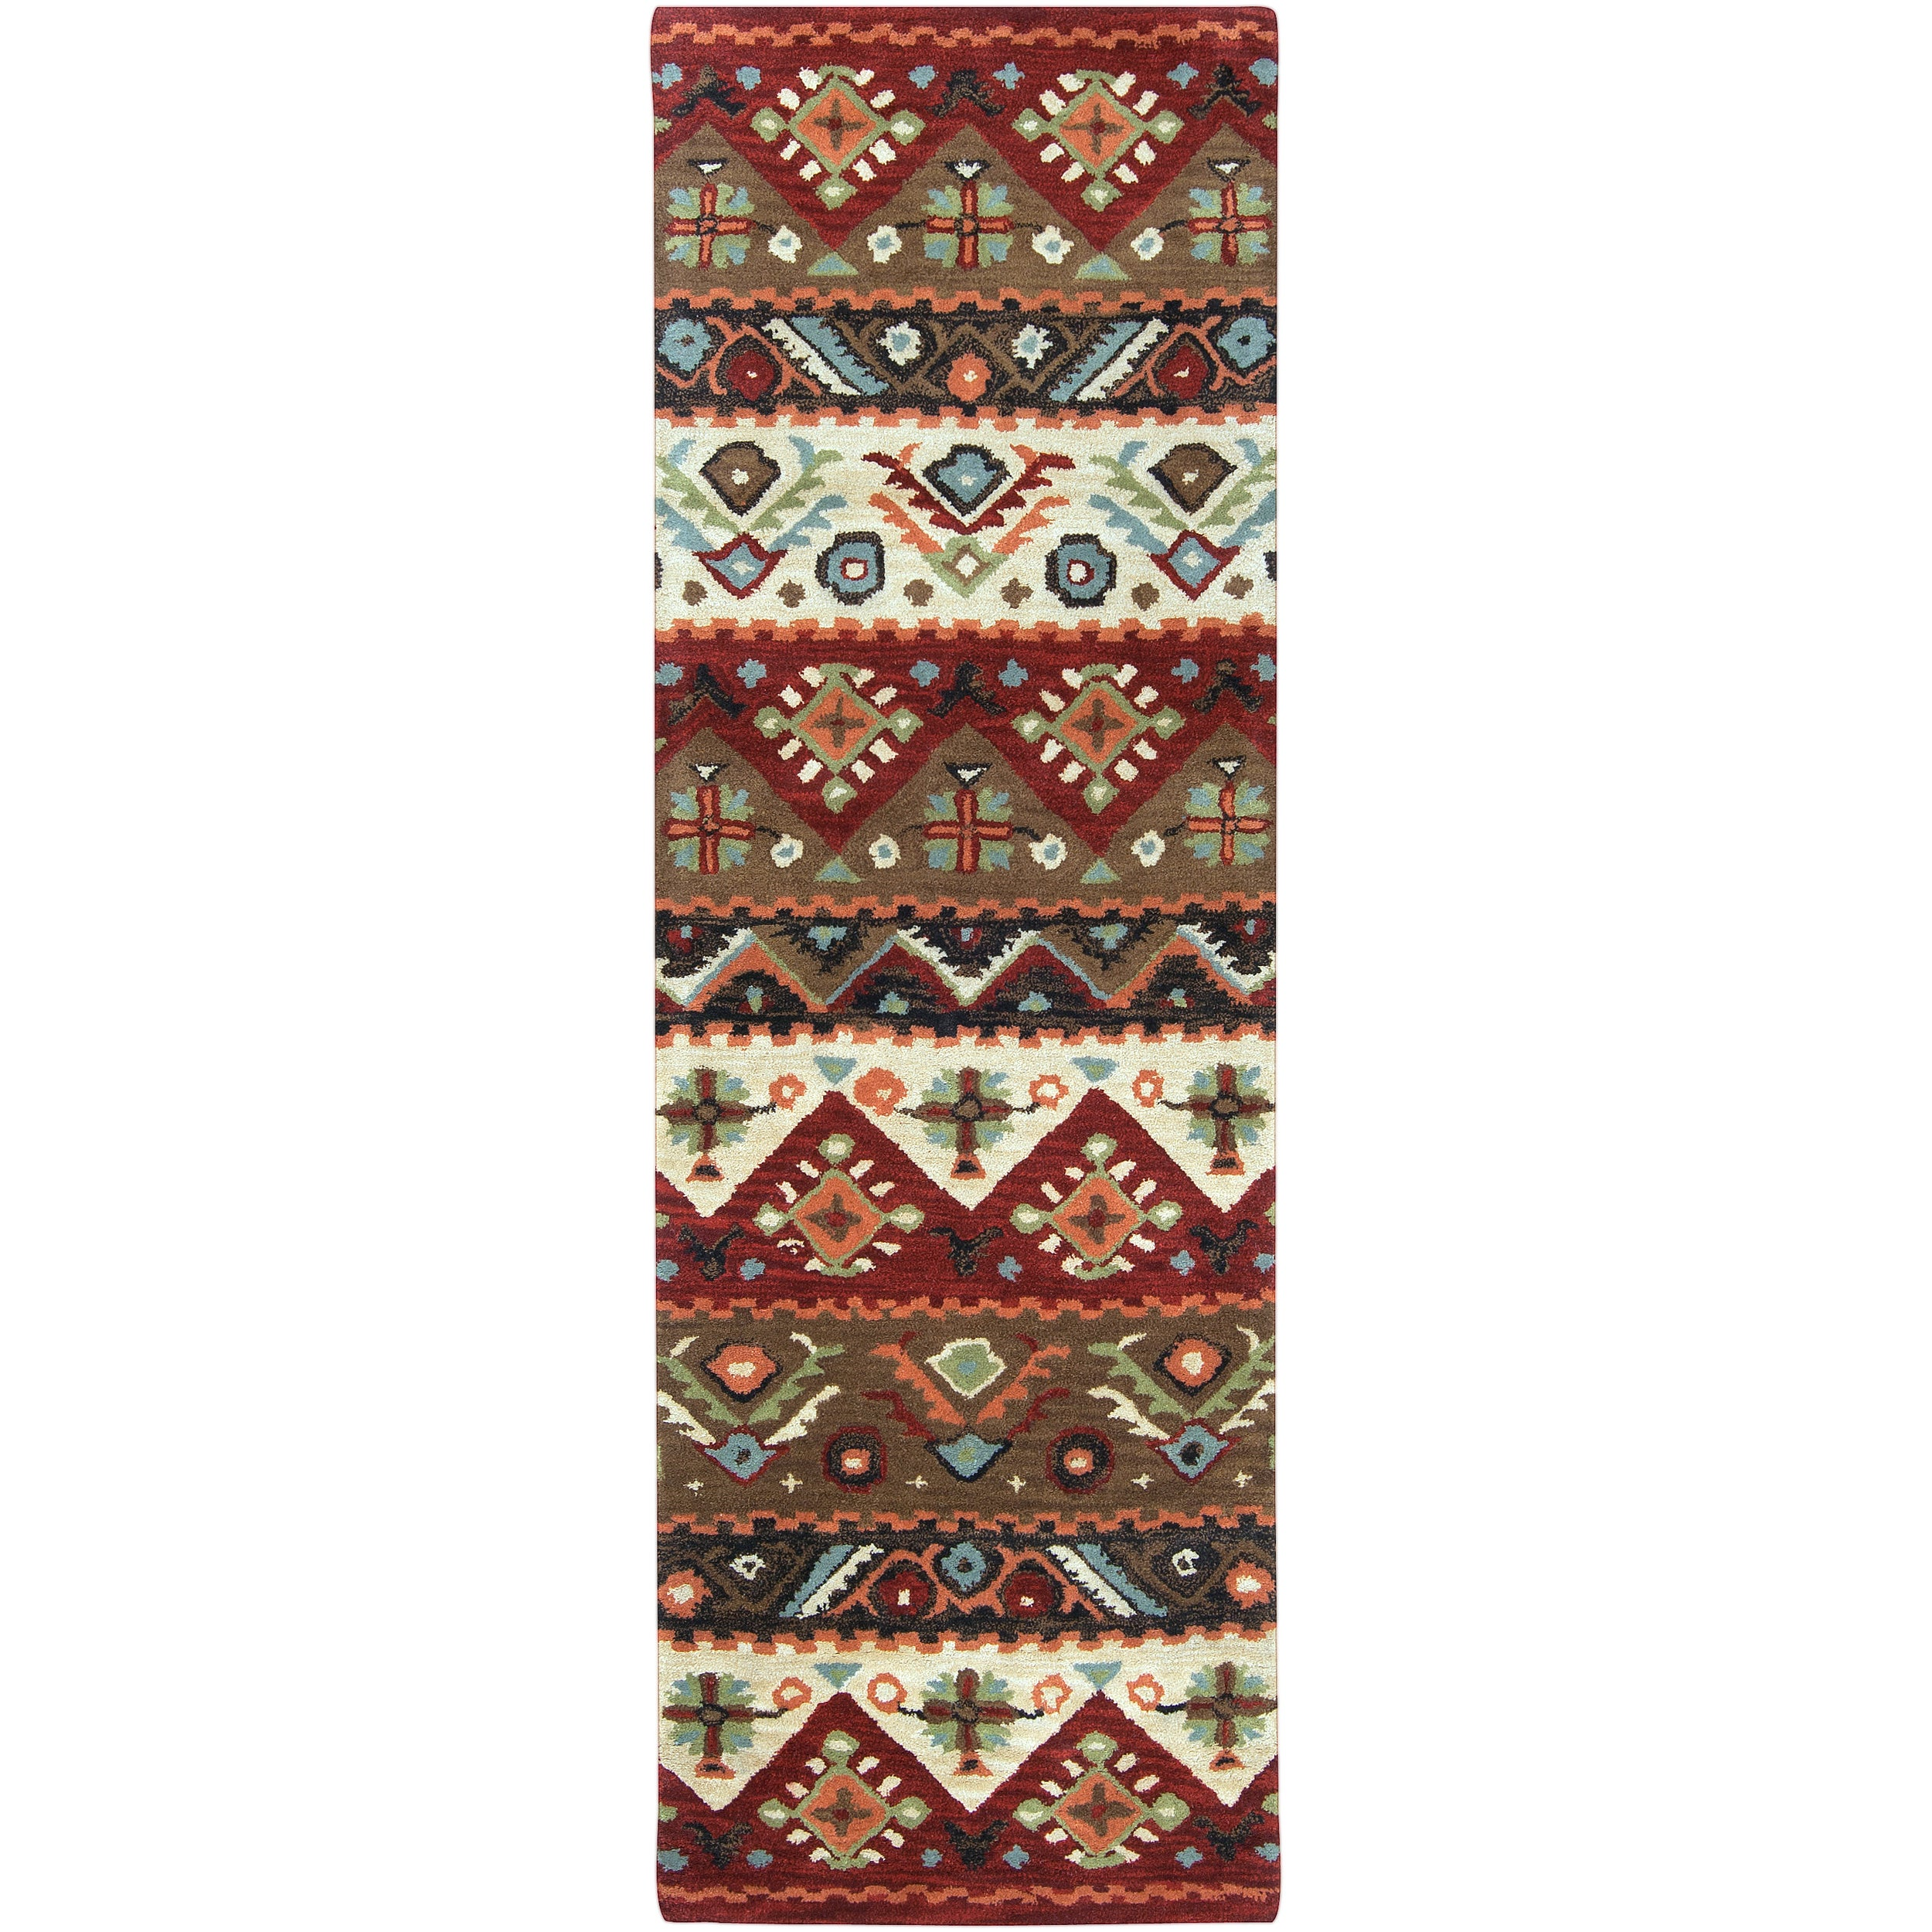 Hand-tufted Red Southwestern Aztec Portuy New Zealand Wool Rug (2'6 x 8')